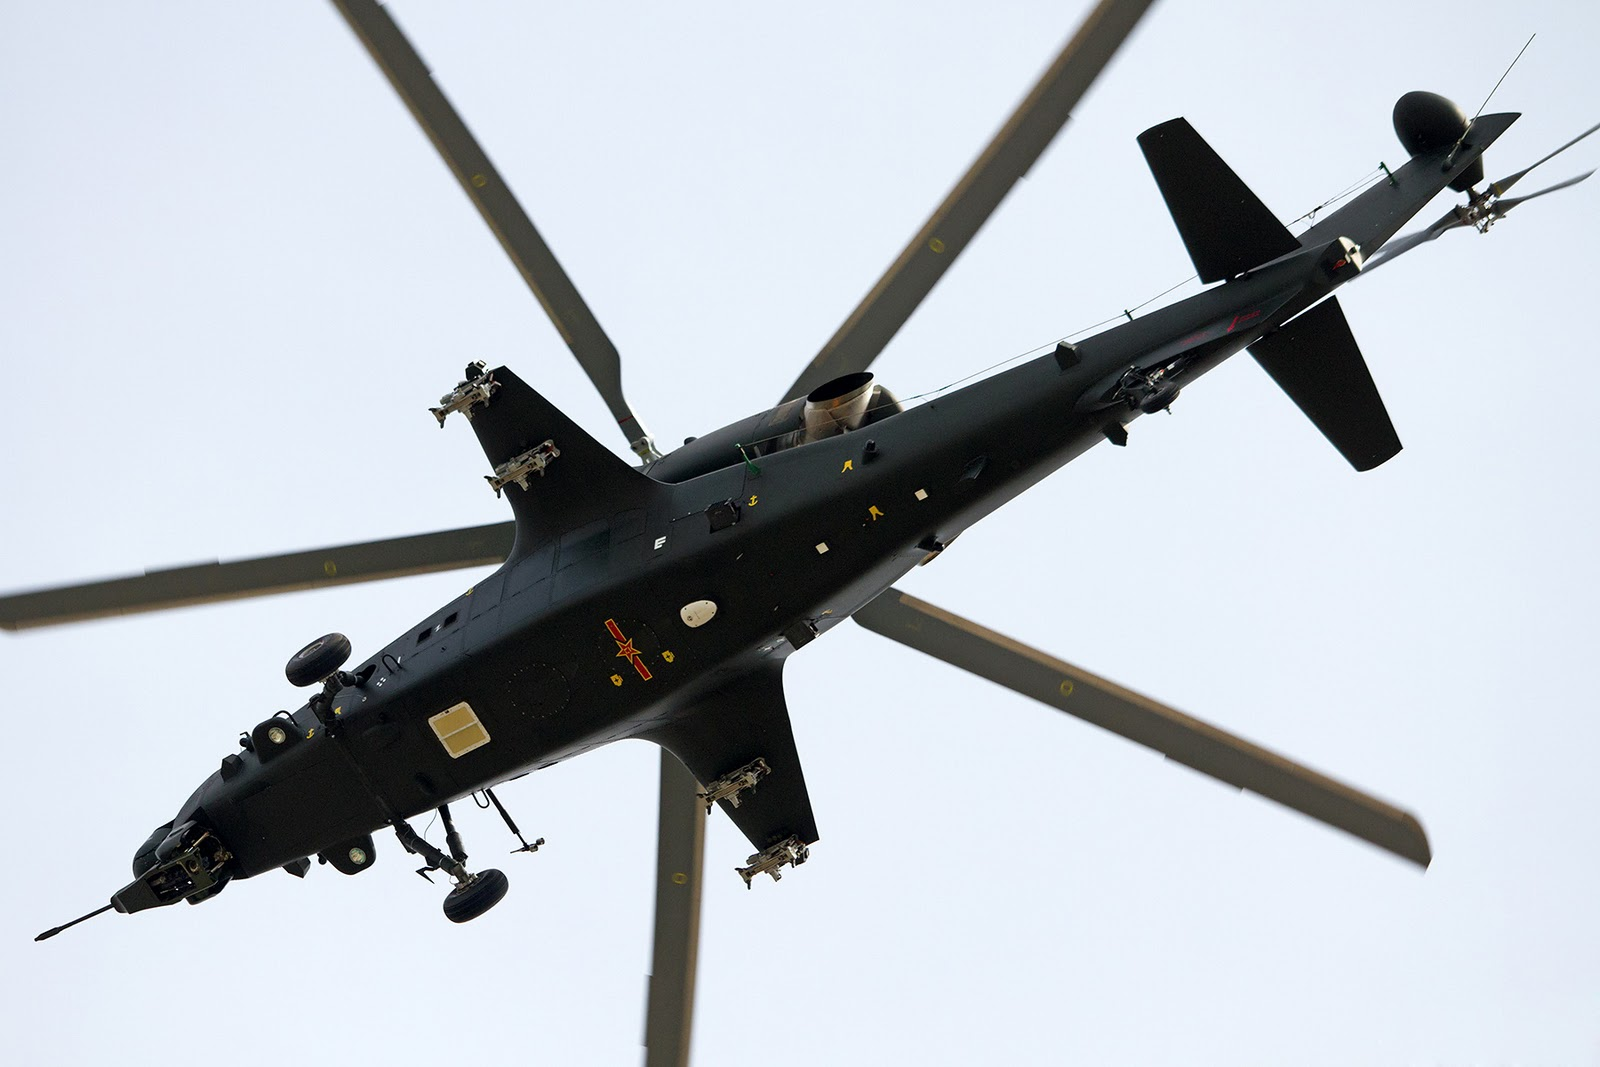 chine Z-10+Zhi-10+%2528Z-10%2529+attack+helicopter+People%2527s+Liberation+Army+%2528PLA%2529+gunship+has+been+developed+by+Changhe+Aircraft+Industries+Group+%2528CAIG%2529+and+China+Helicopter+Research+and+Development+Institute+%2528CHRDI%2529%252C+missile++%25283%2529